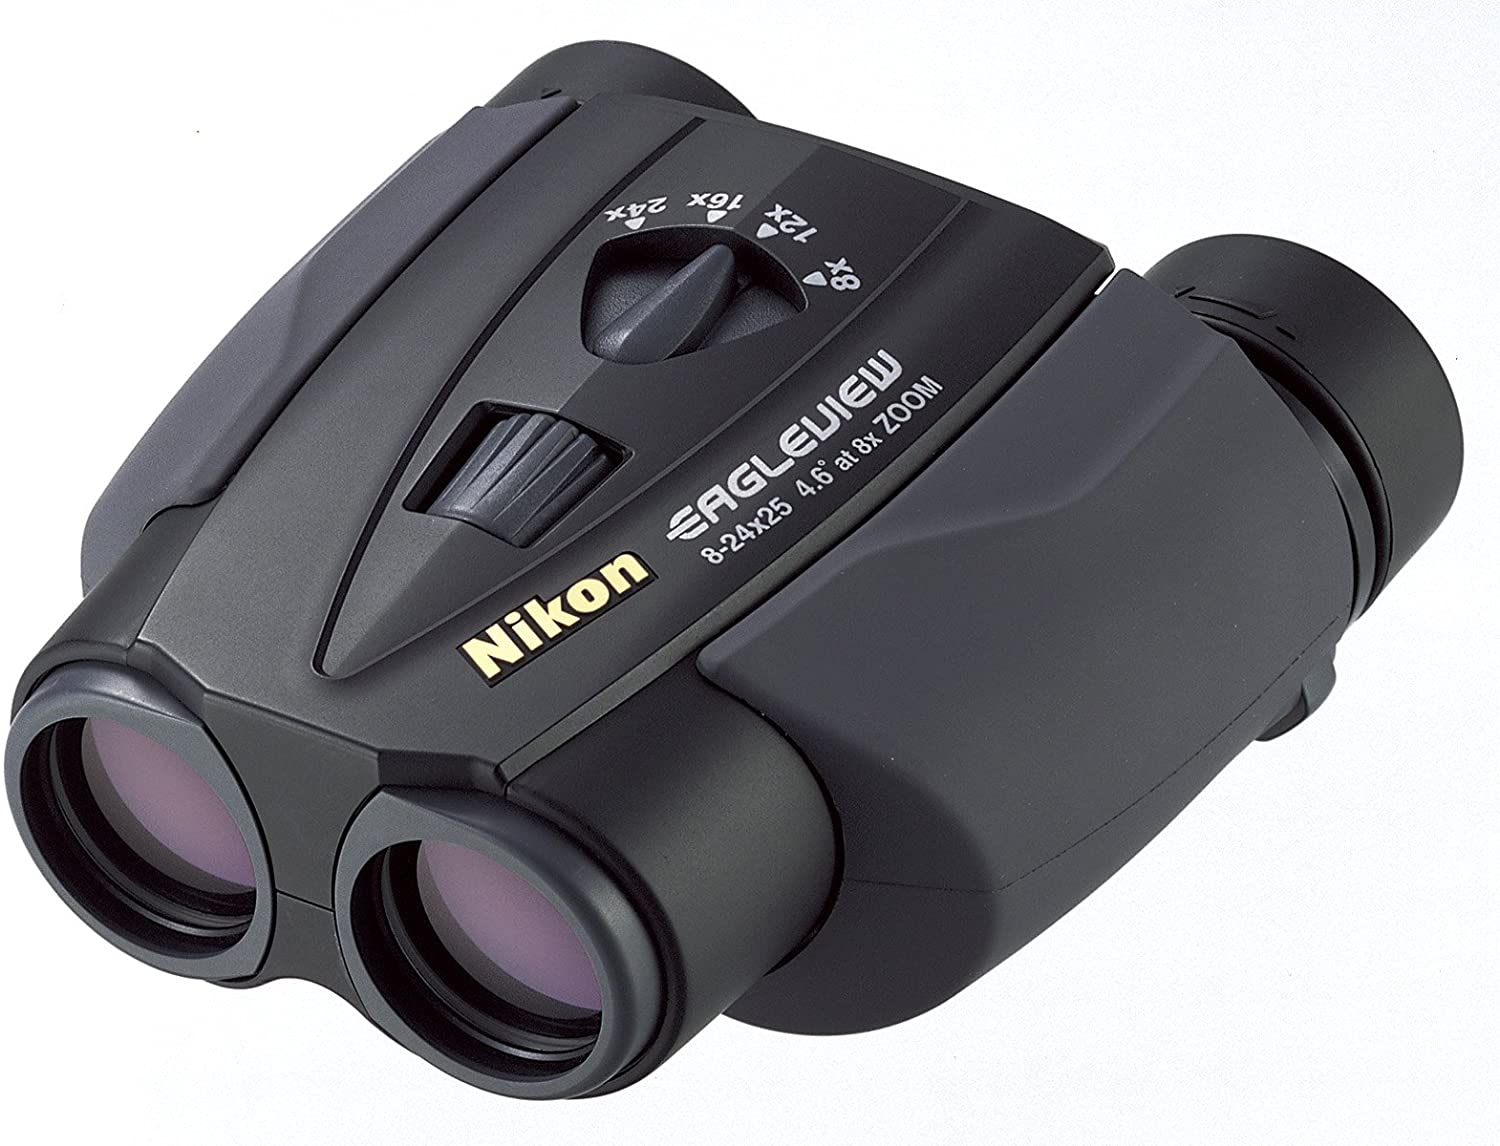 Nikon Eagleview Zoom 8-24X25mm Binoculars